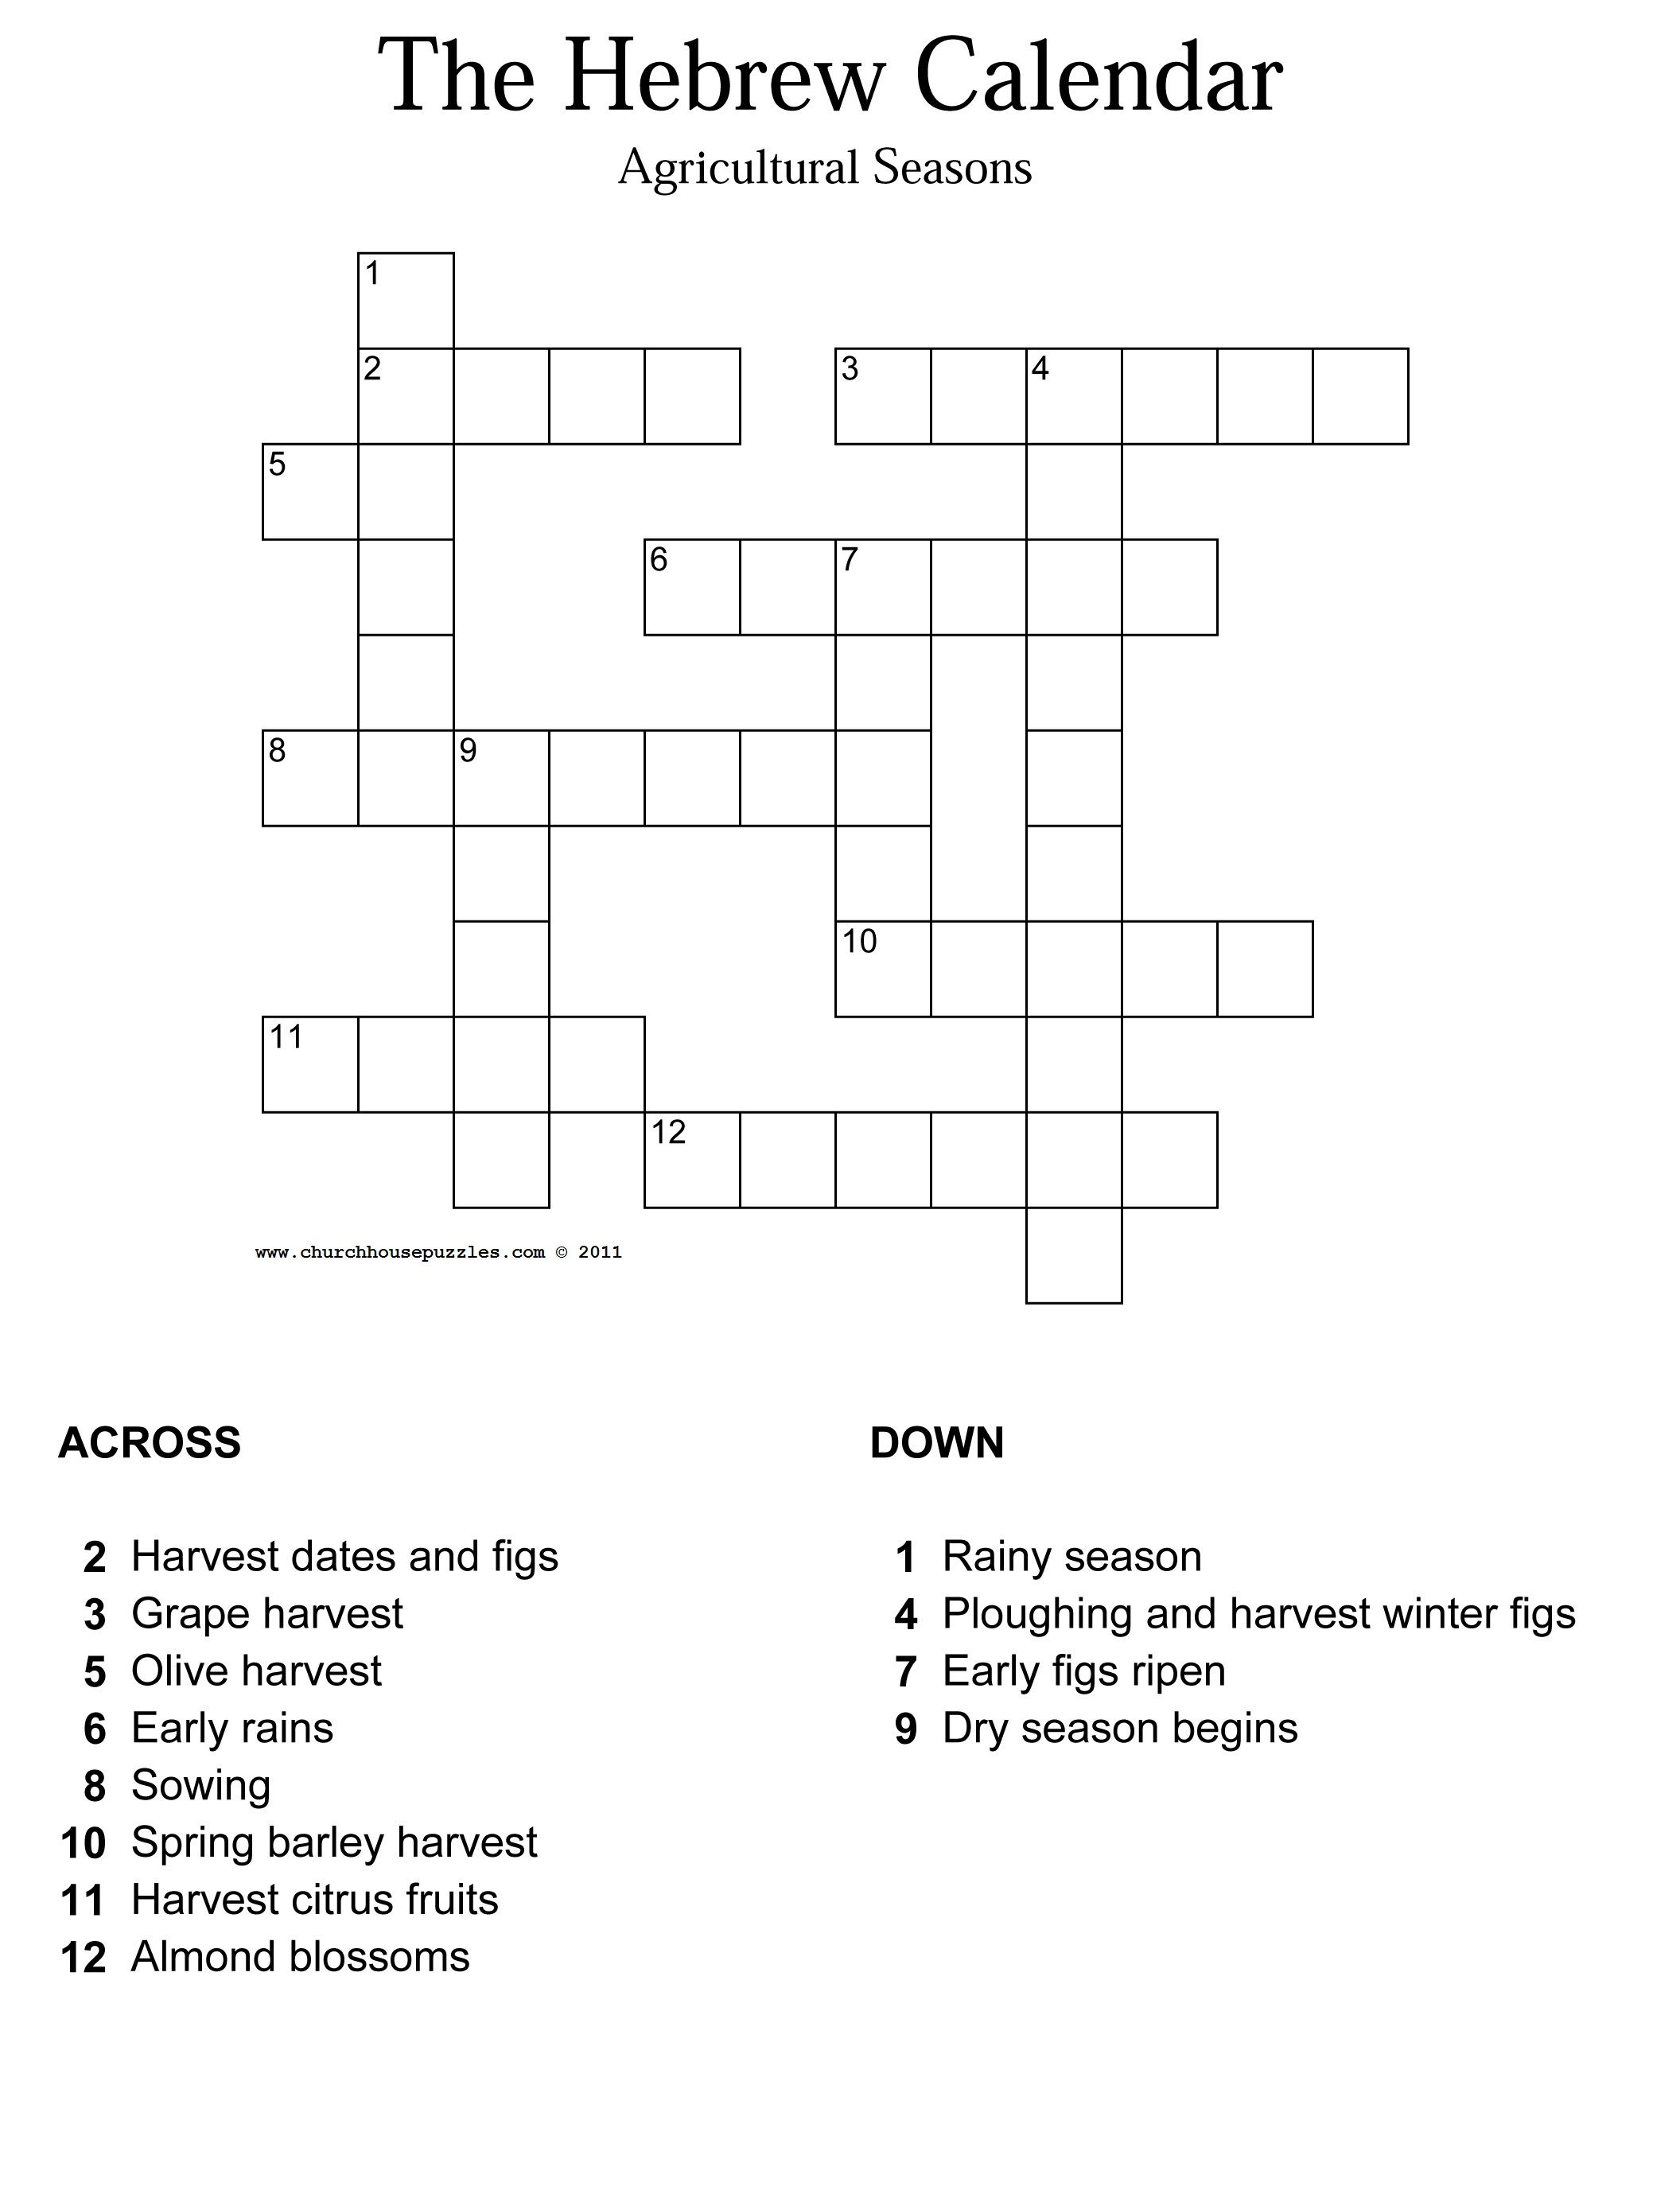 Hebrew Calendar.The Hebrew Calendar Crossword Puzzle